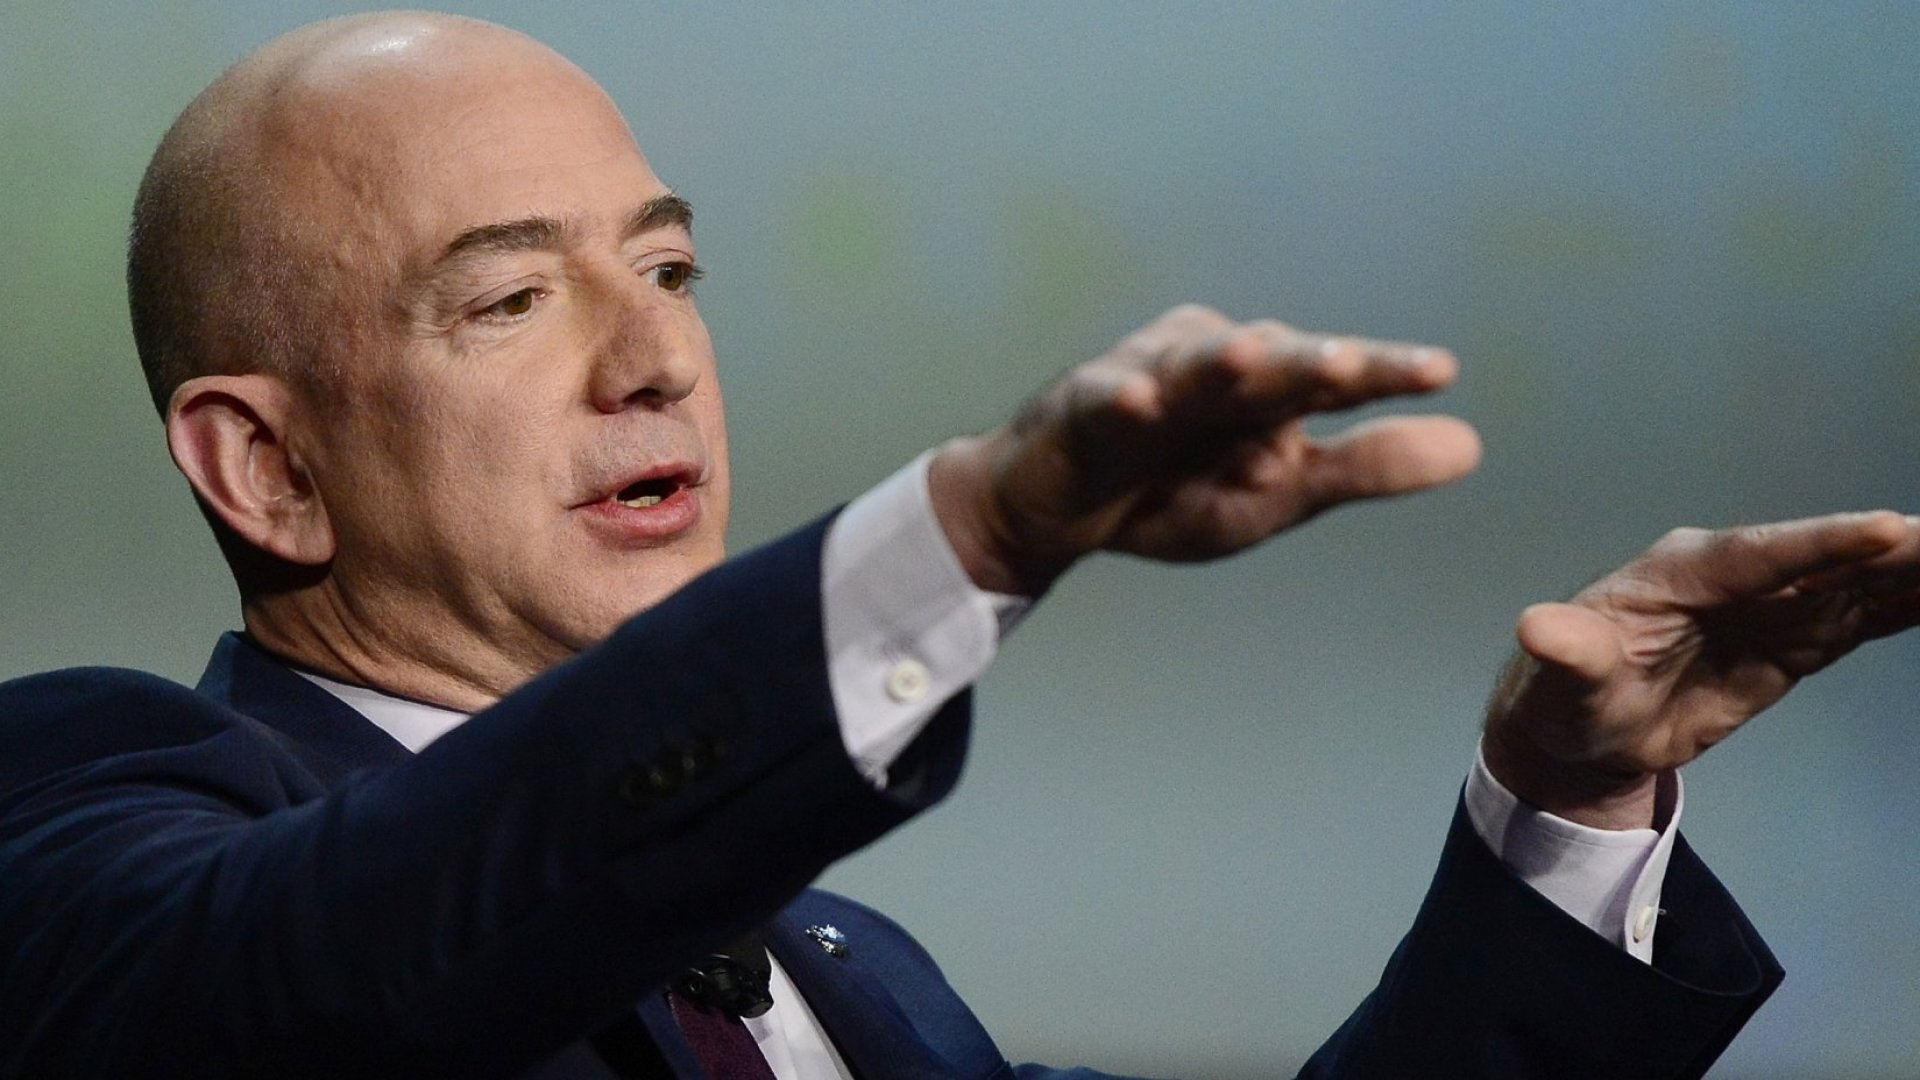 Jeff Bezos Wants to Send Millions to Space. Here's What Every Leader Should Take From That Vision